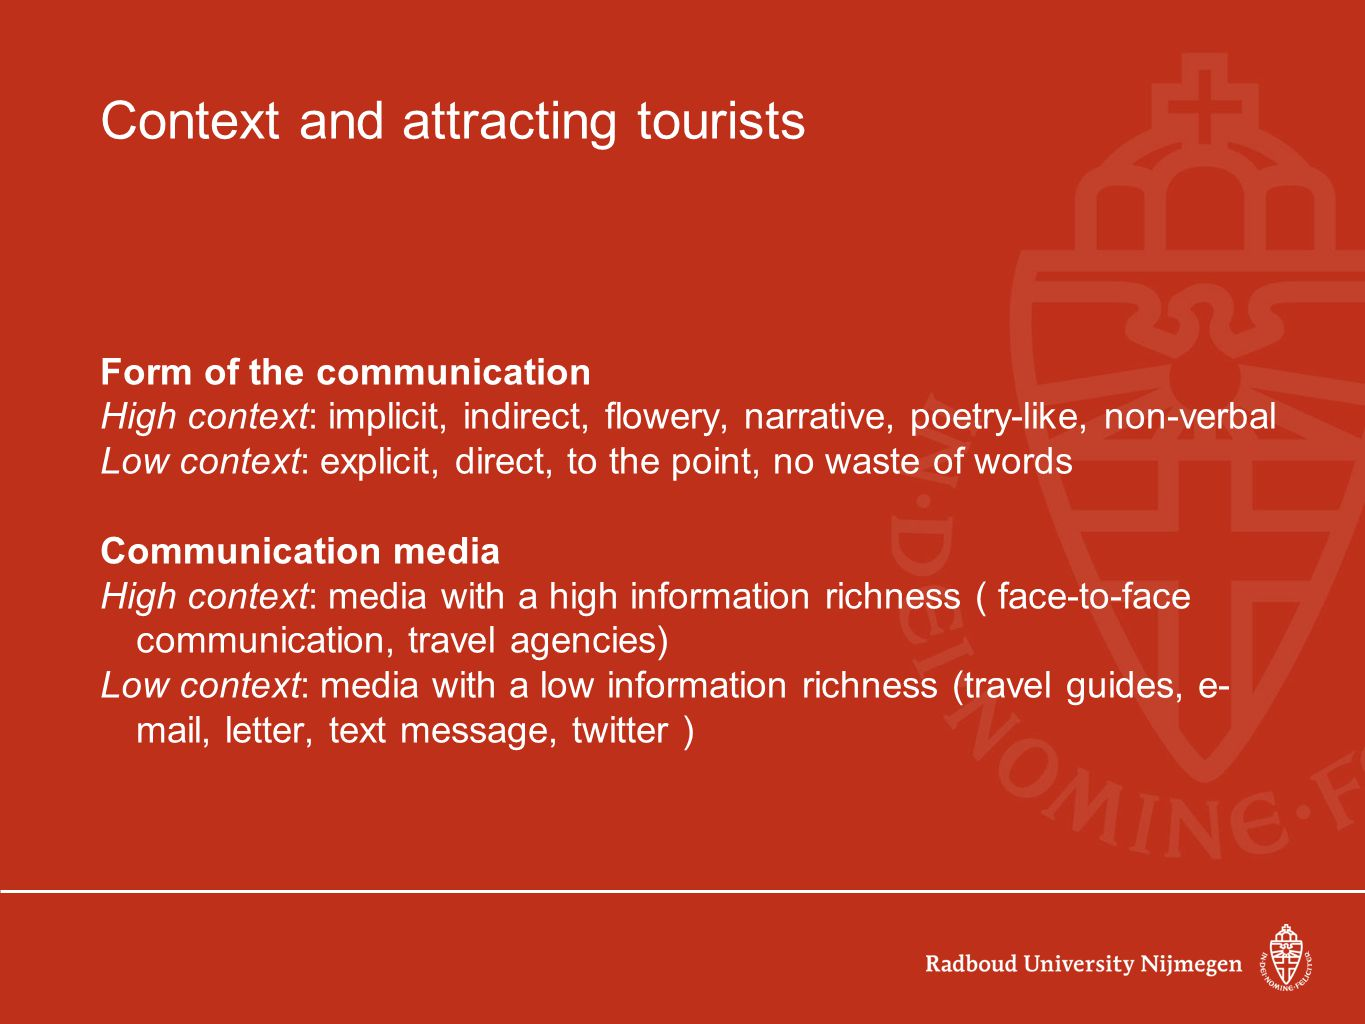 Context and attracting tourists